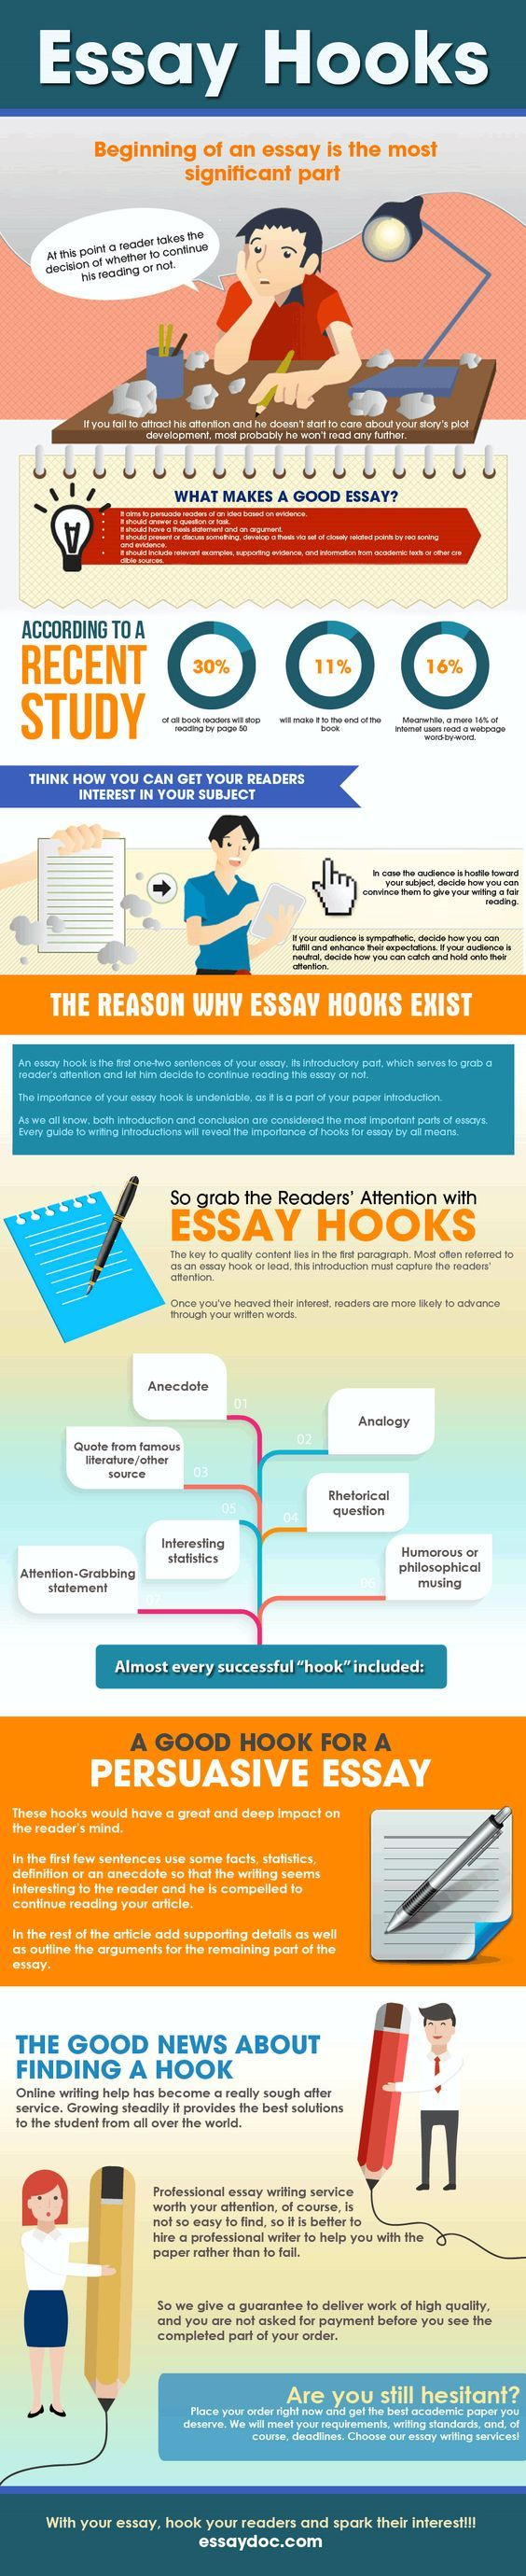 best essay tips ideas essay writing tips  best 25 essay tips ideas essay writing tips school organization and college organization